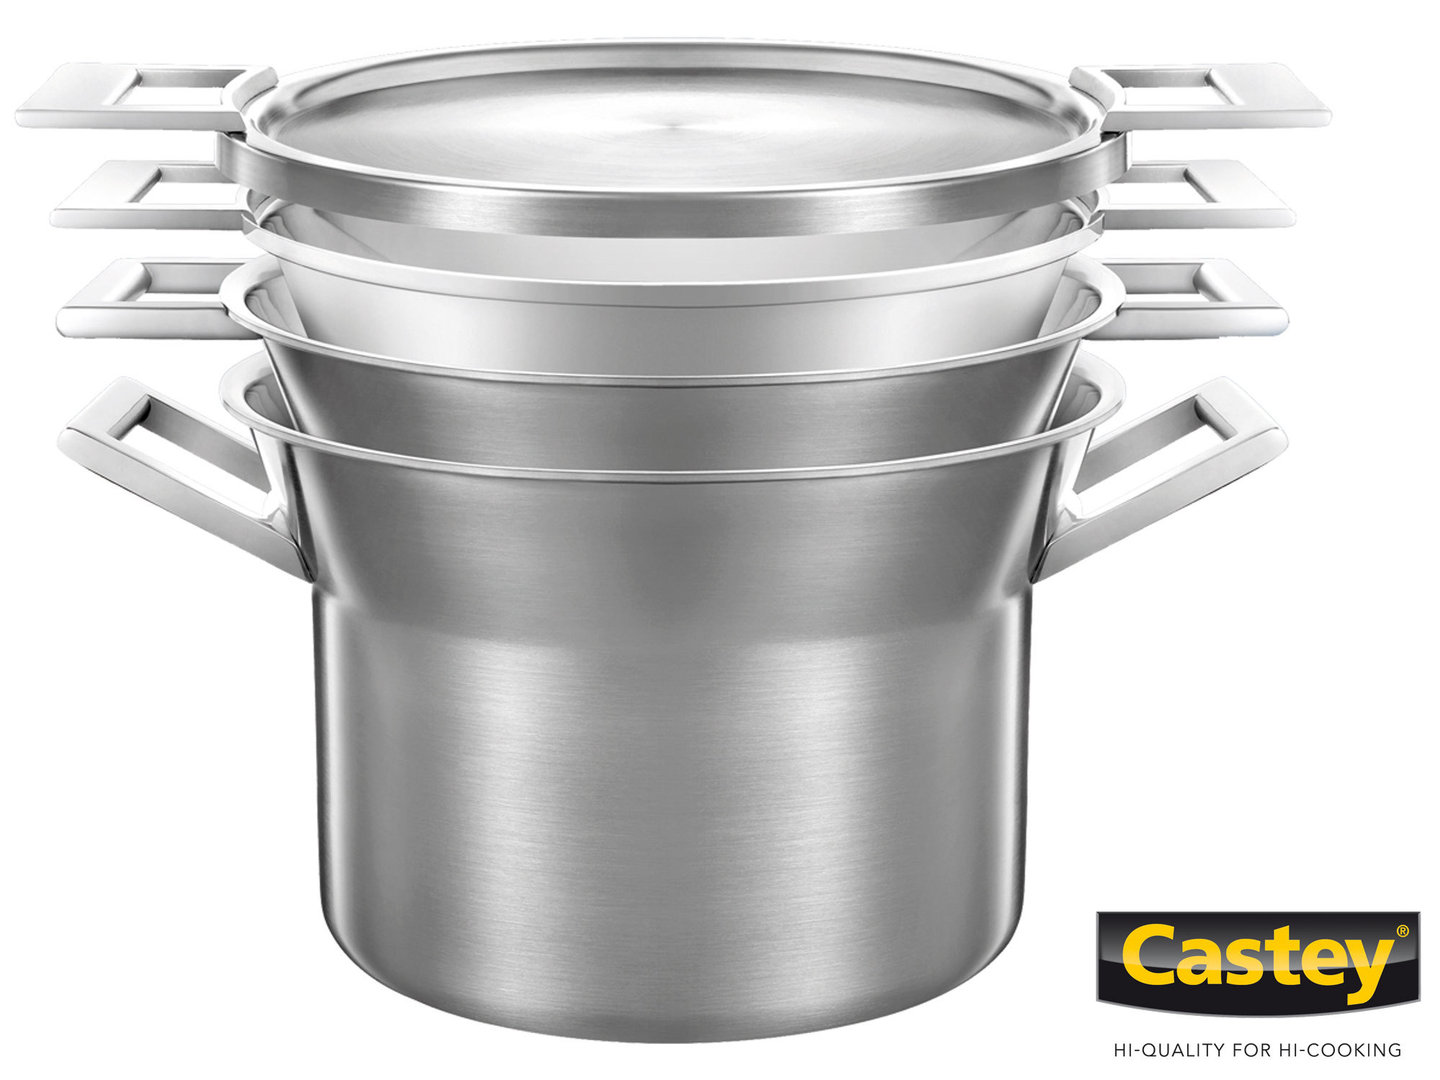 CASTEY 3-ply casserole set 28 cm ARTIC 4 pc with steamer insert nestable